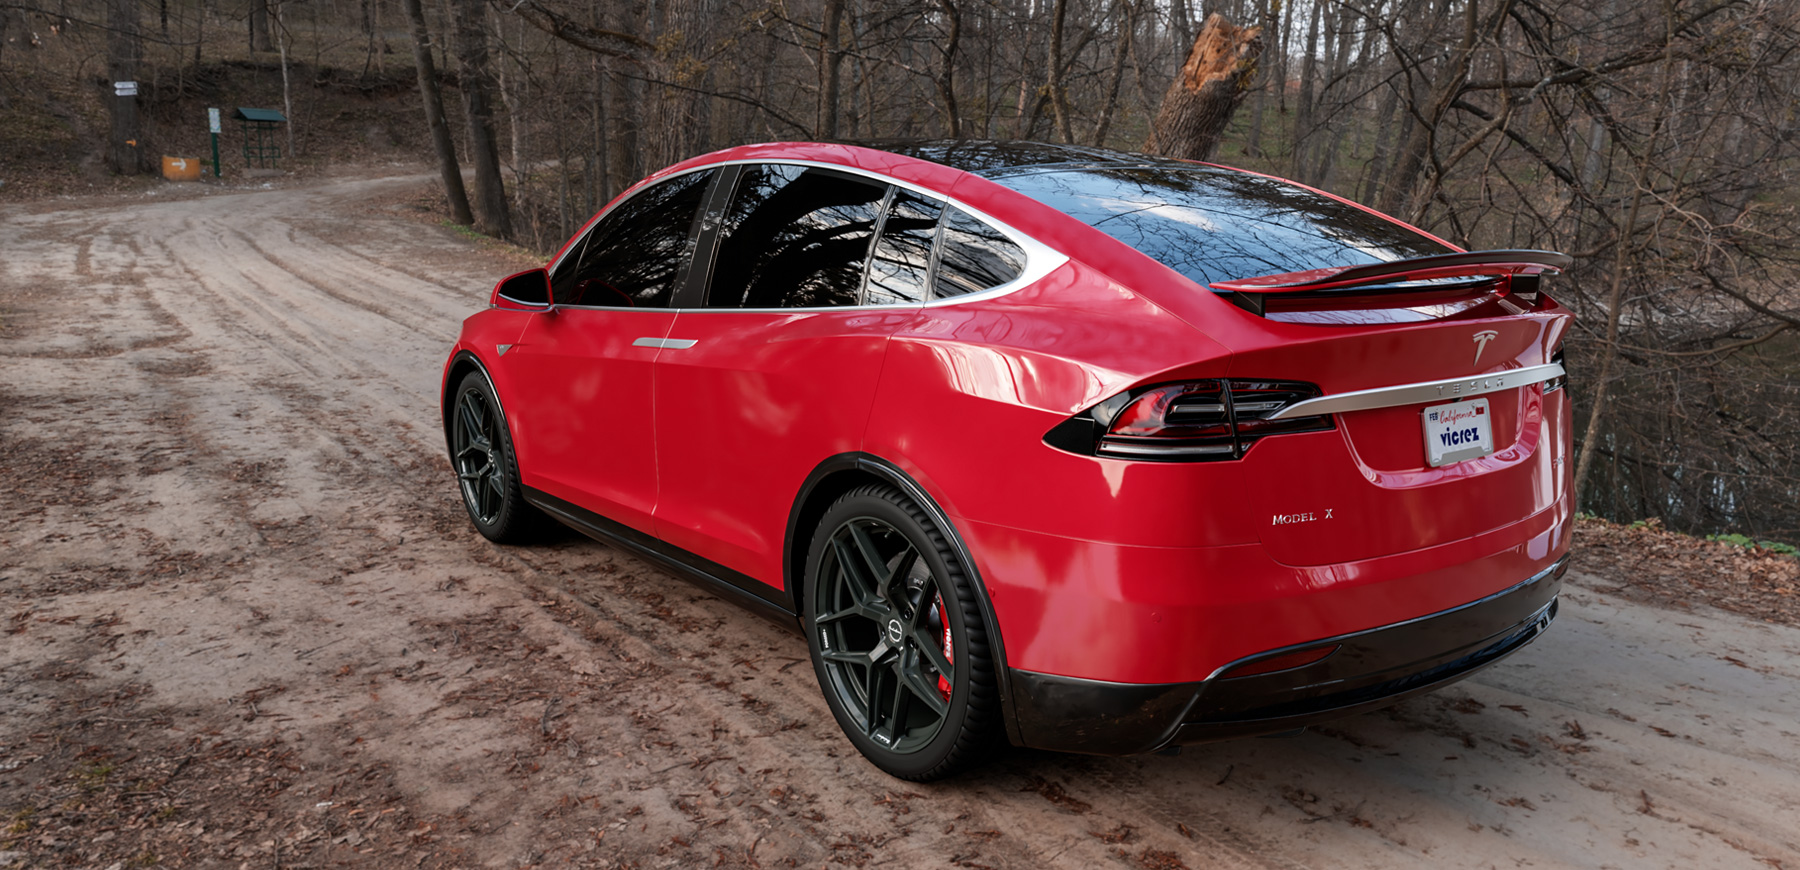 Red Tesla Model X x Brixton Forged RF7 (Finished in Satin Black) vzn100191